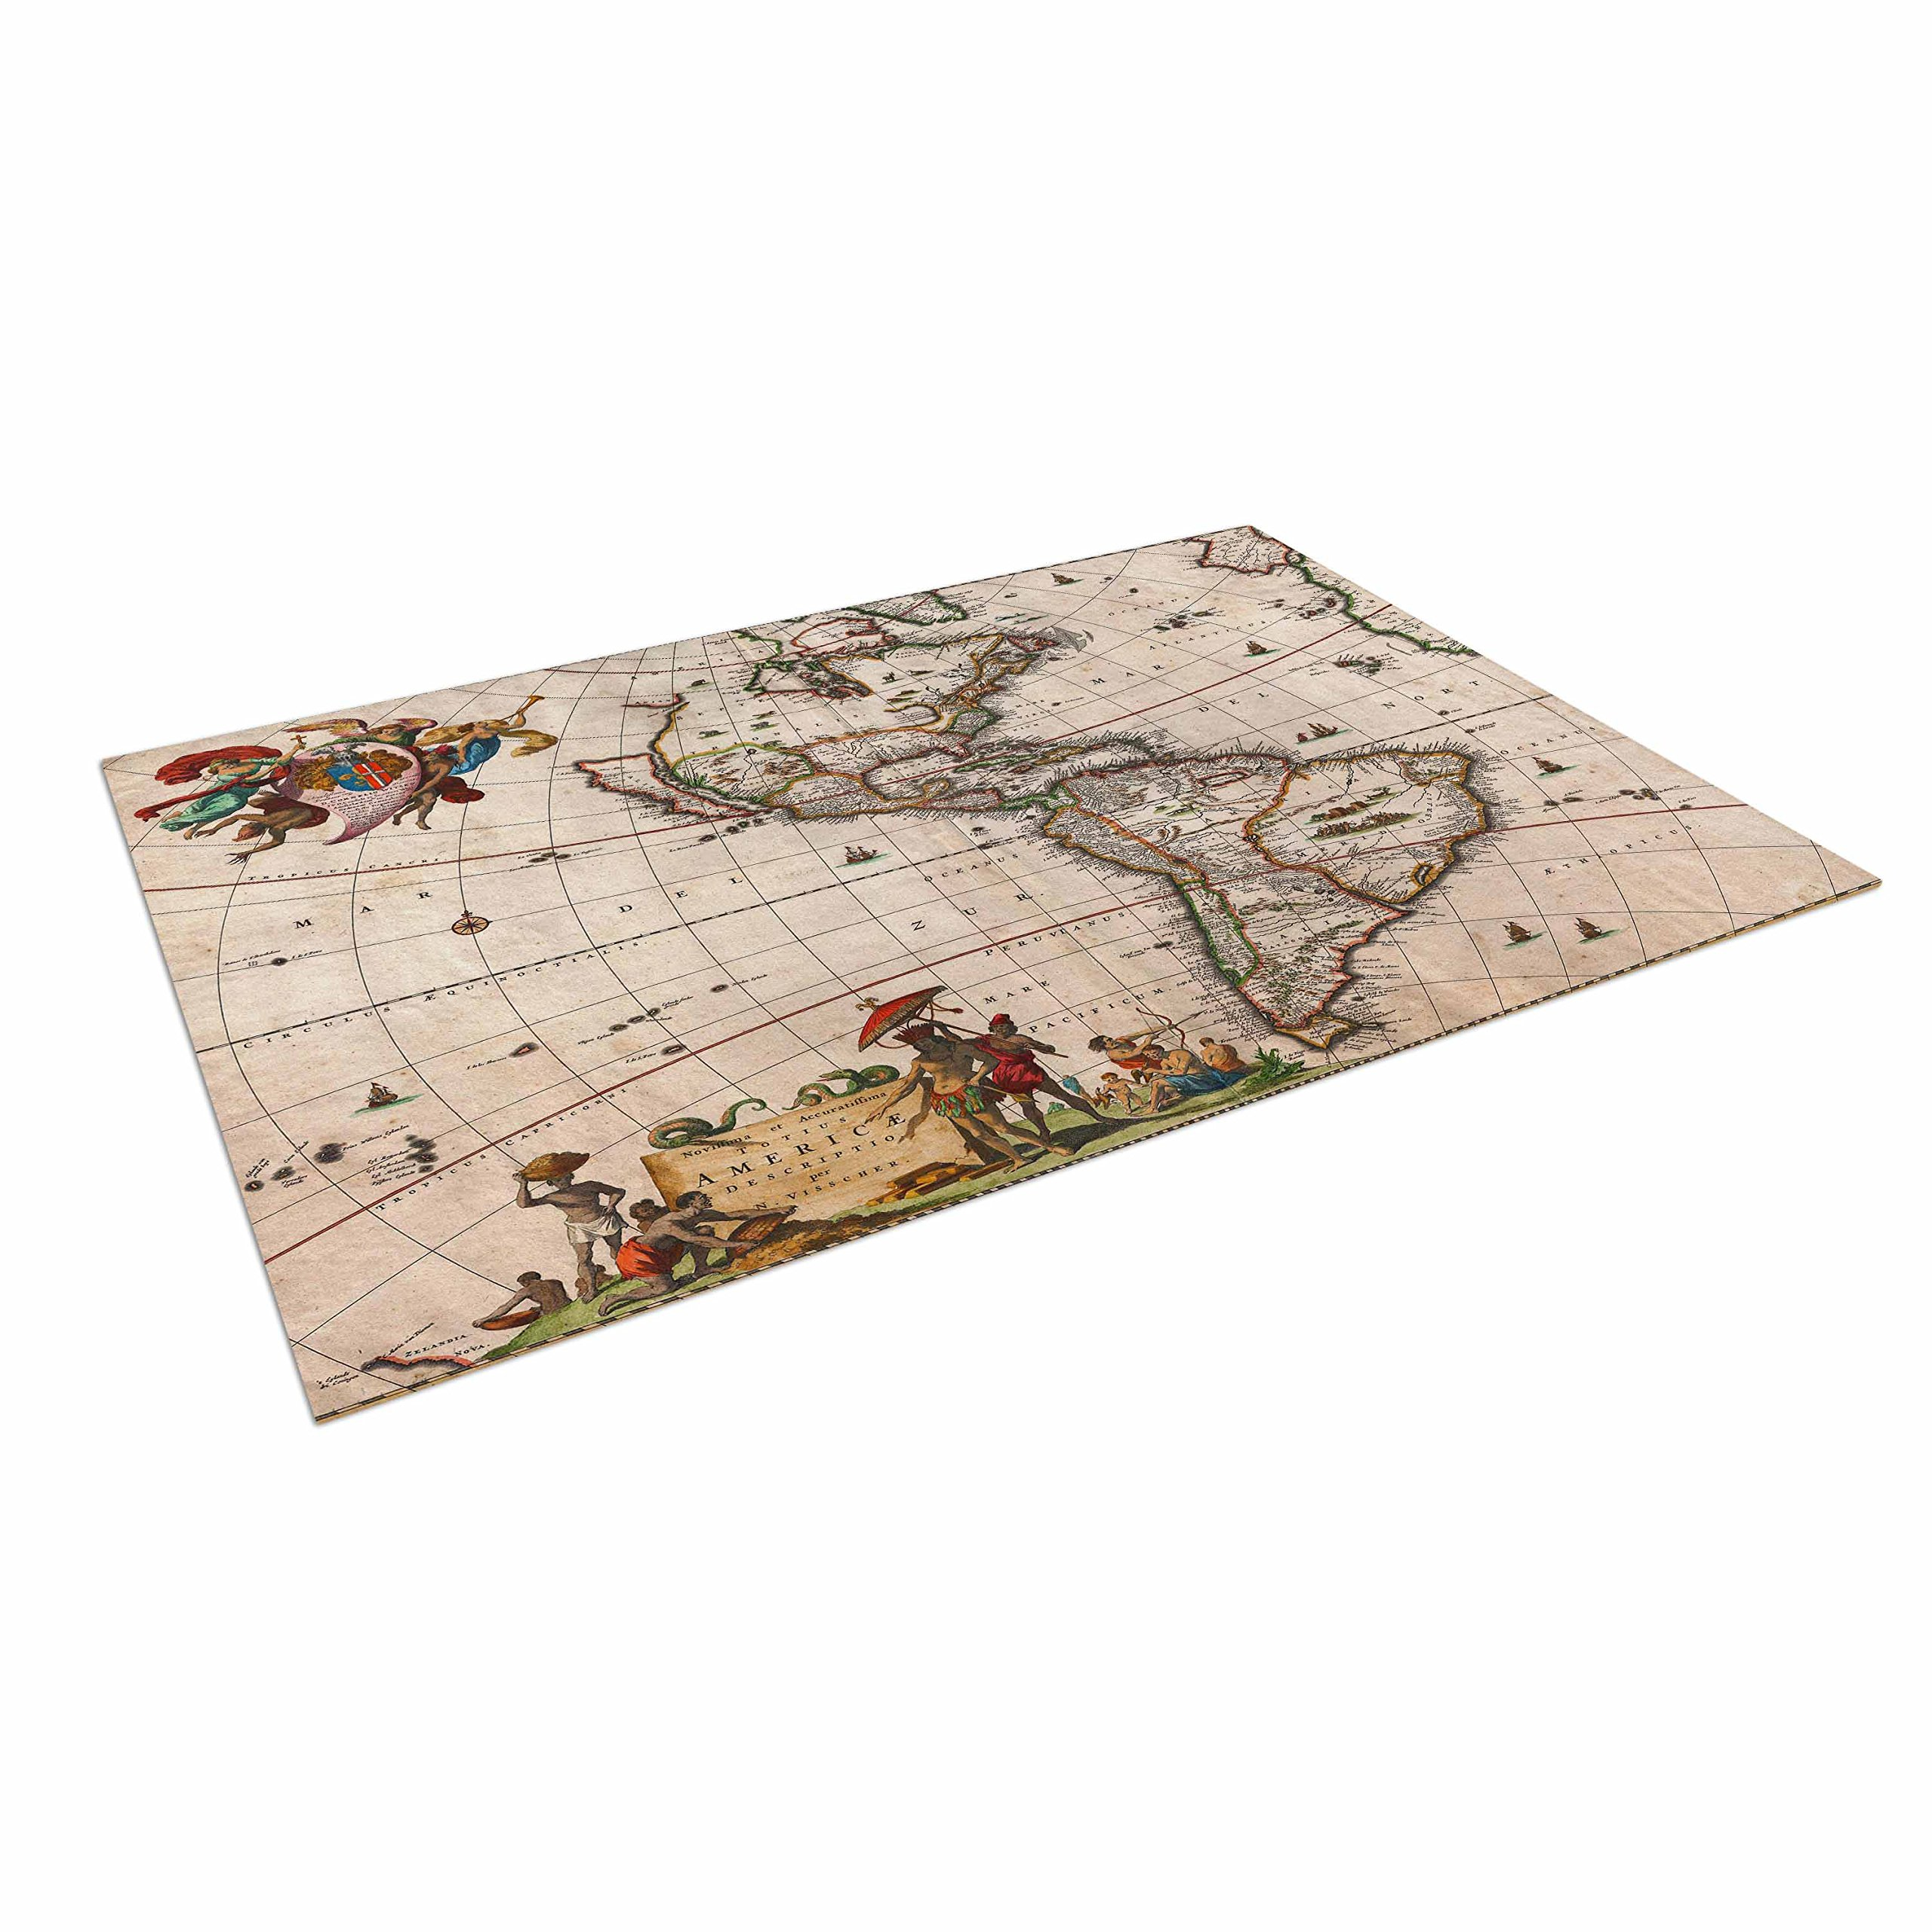 KESS InHouse Bruce Stanfield ''Vintage Map of The America's '' Brown Green Outdoor Floor Mat, 4' x 5' by Kess InHouse